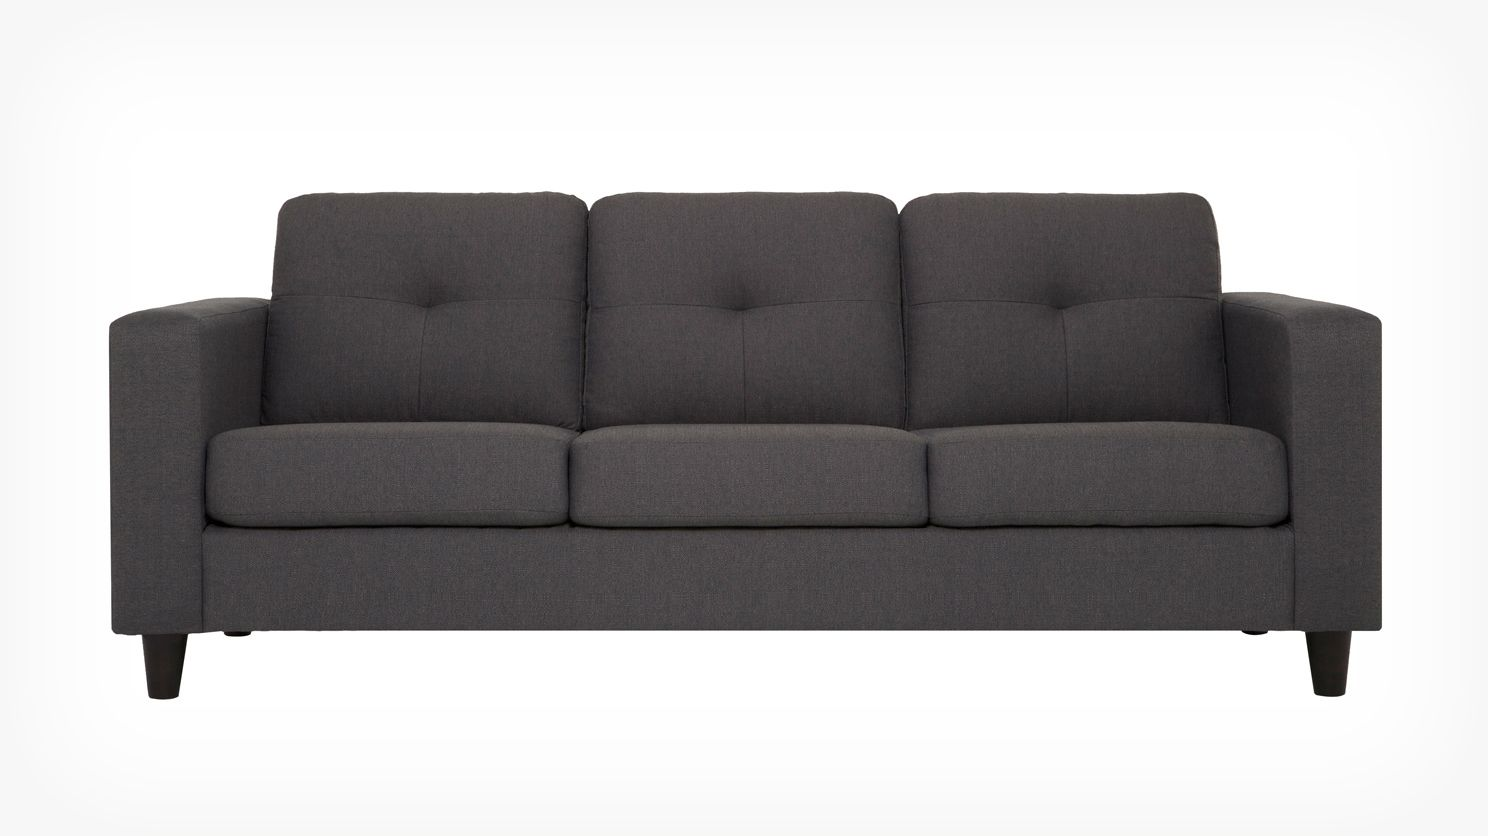 Furniture Village Hartford Sofa Solo Sofa Jack Charcoal Front Home Fabric Sofa Sofa Leather Sofa